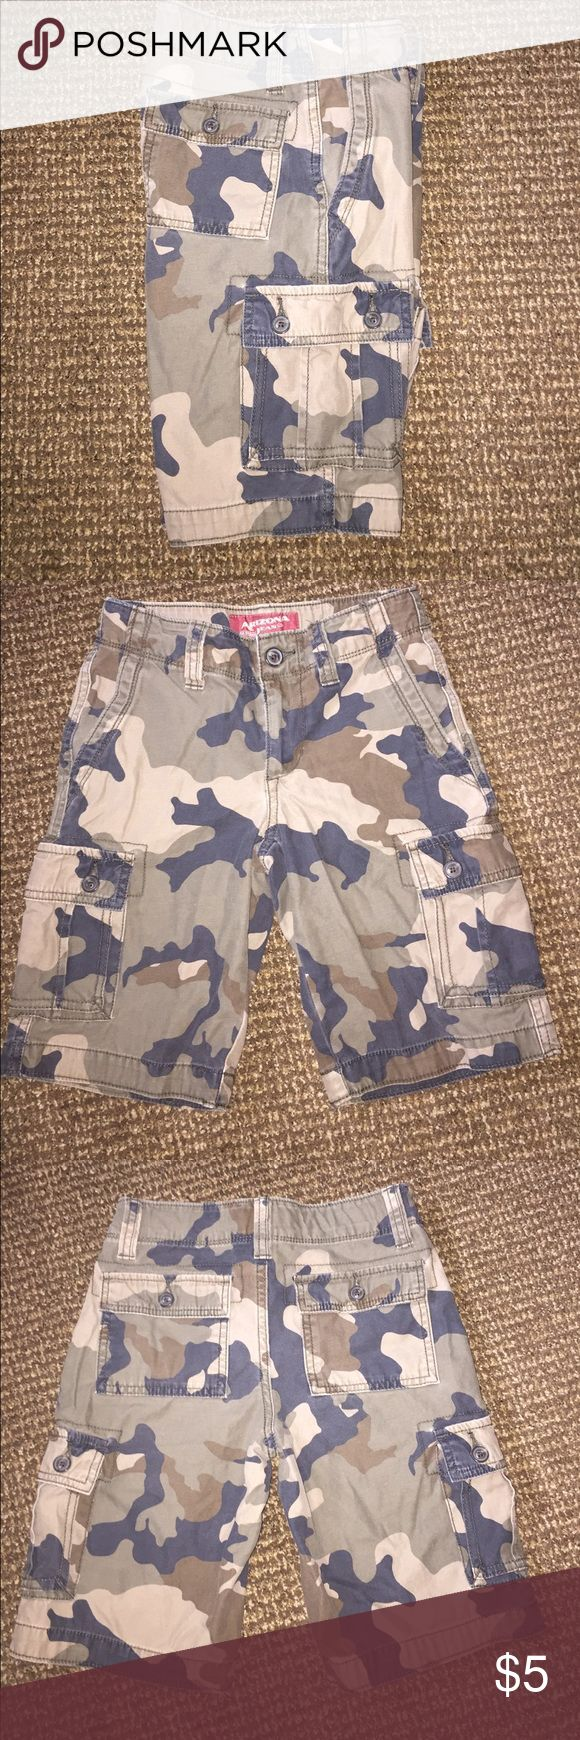 Little boys camouflage shorts Gently used adjustable waist button home and zipper fly. 4 pockets total and No stains or holes. Size 8 regular fit Arizona Jean Company Bottoms Shorts